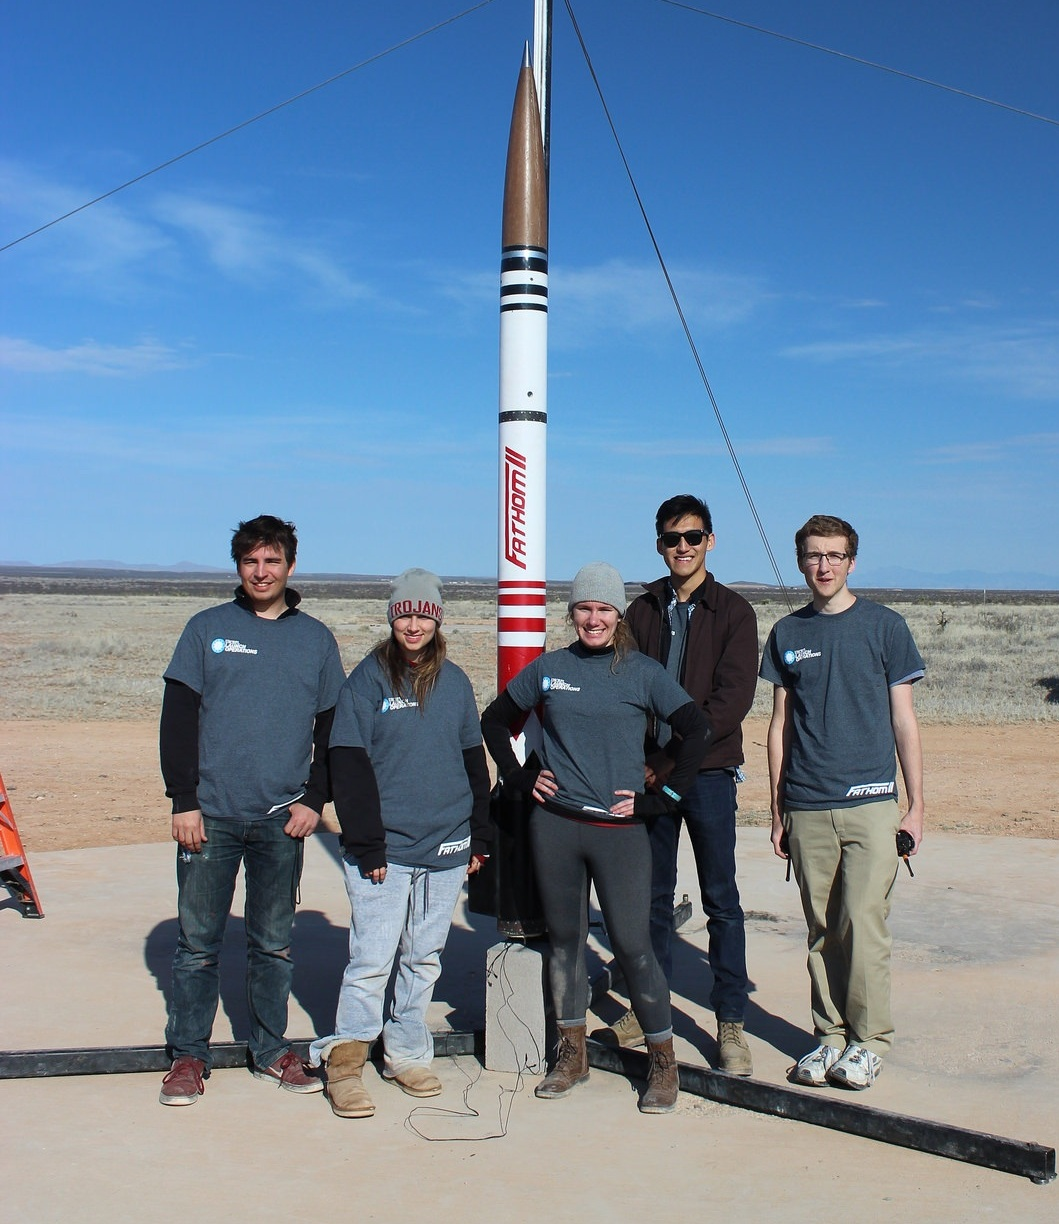 The launch operations team poses for one last photo with Fathom II before clearing the pad for launch.